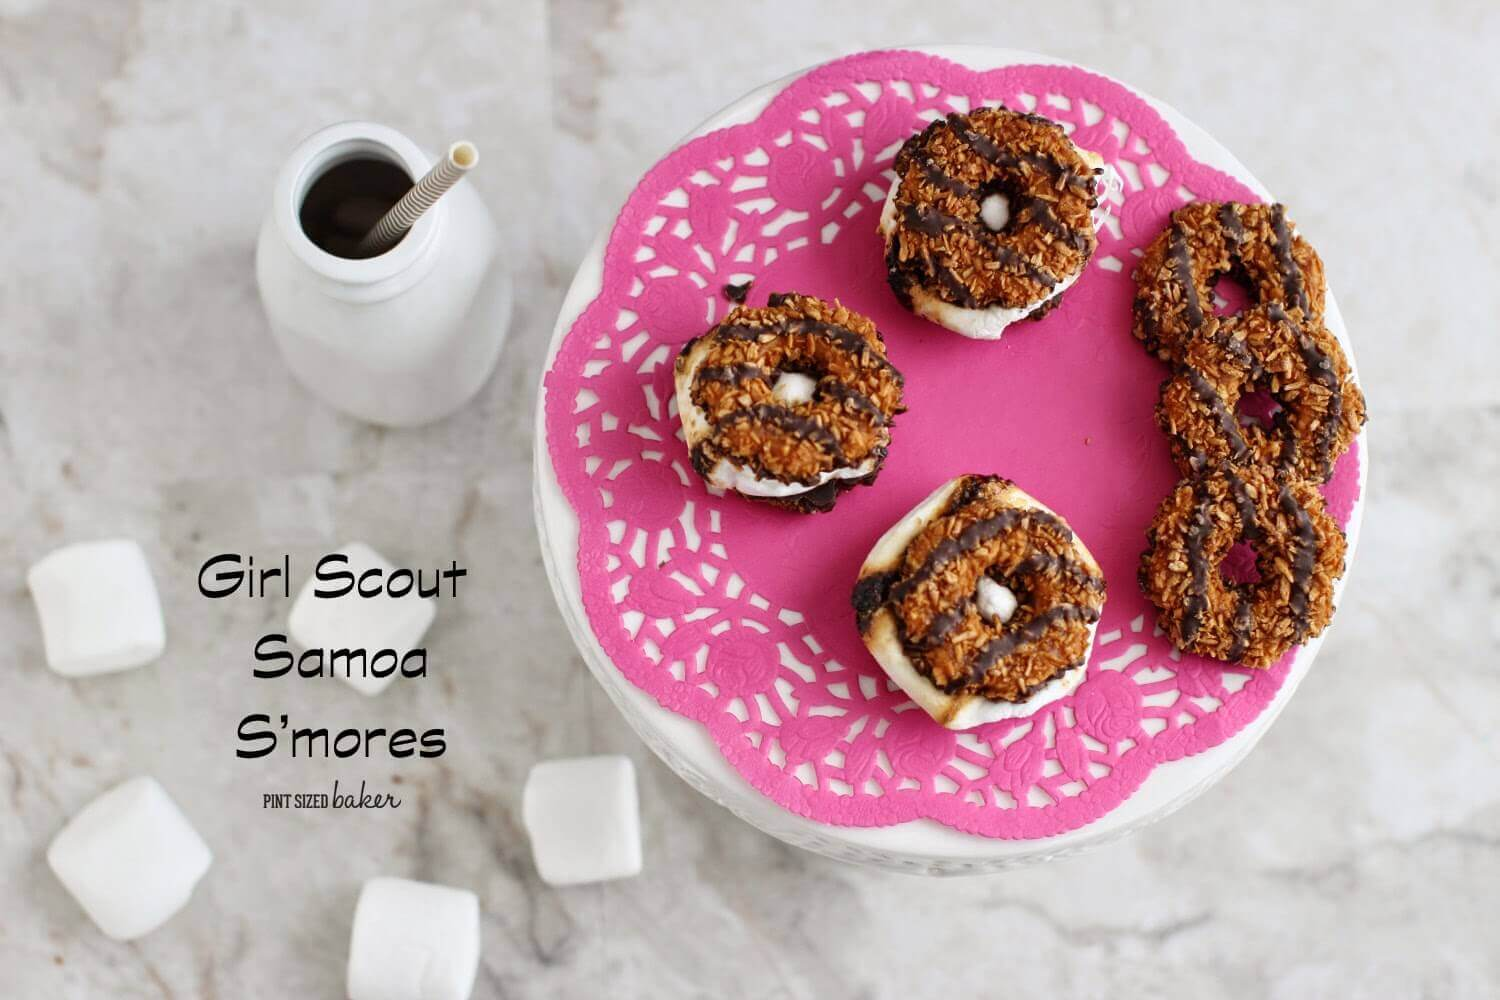 Girl Scout Samoa S'mores